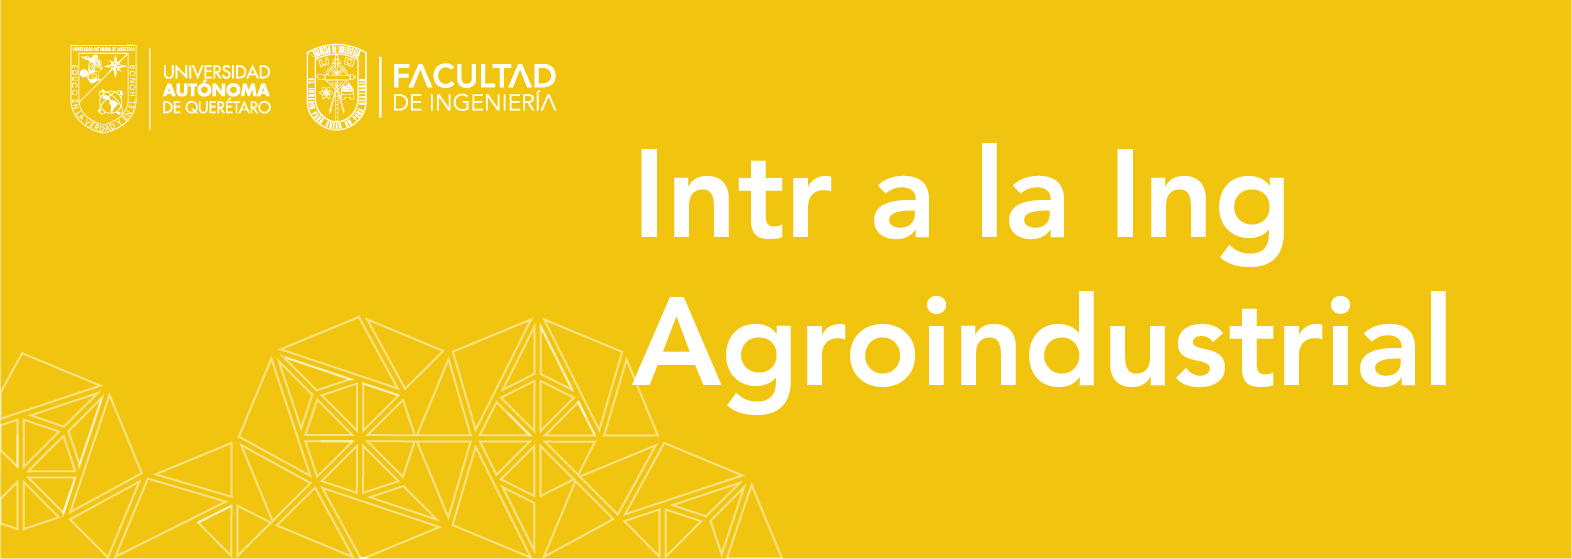 Intr. a la Ing. Agroindustrial